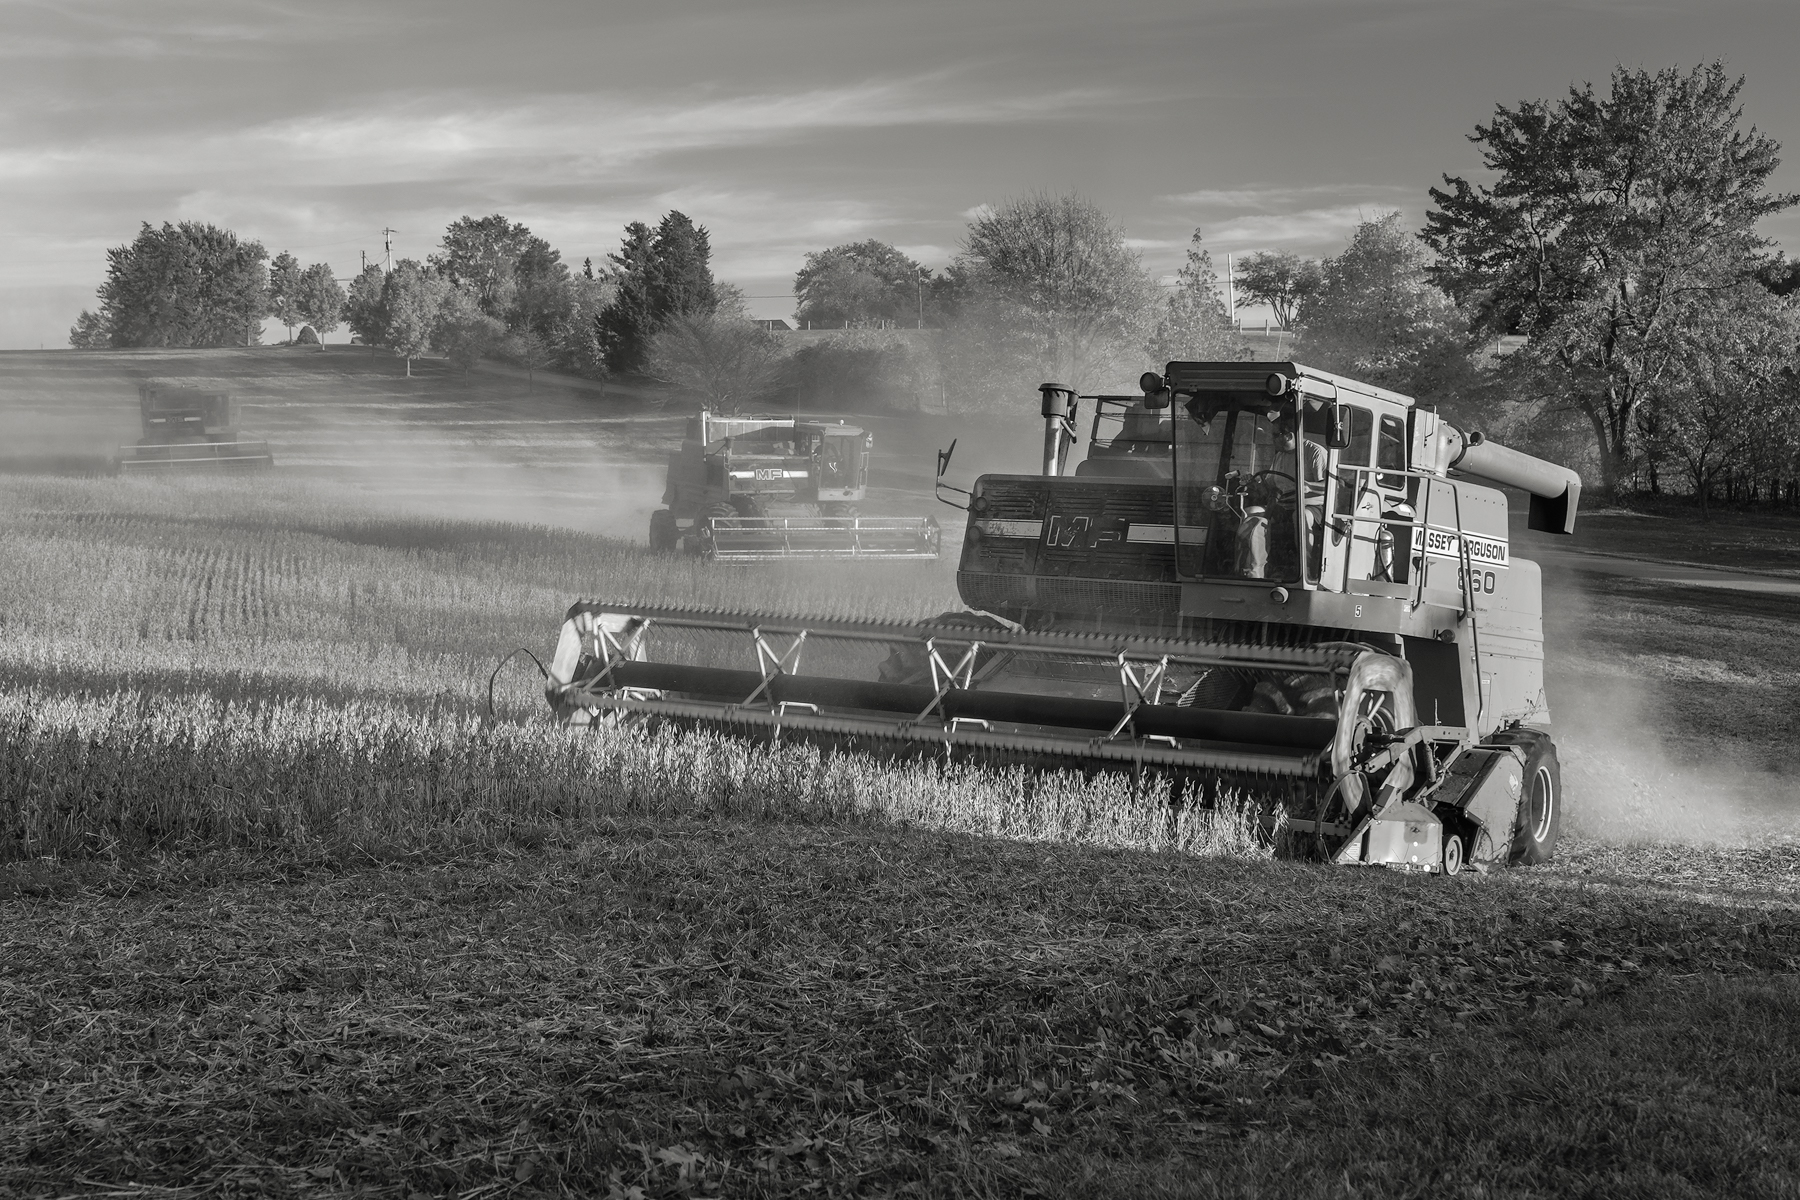 Three combines work the soybean fields at Shepherd's Hey Farm, MD. Fuji X-T2 and a Fujinon XF55-200mm at 55mm. Image exposed at ISO 200 at f5.6 for 1/60 of a second.